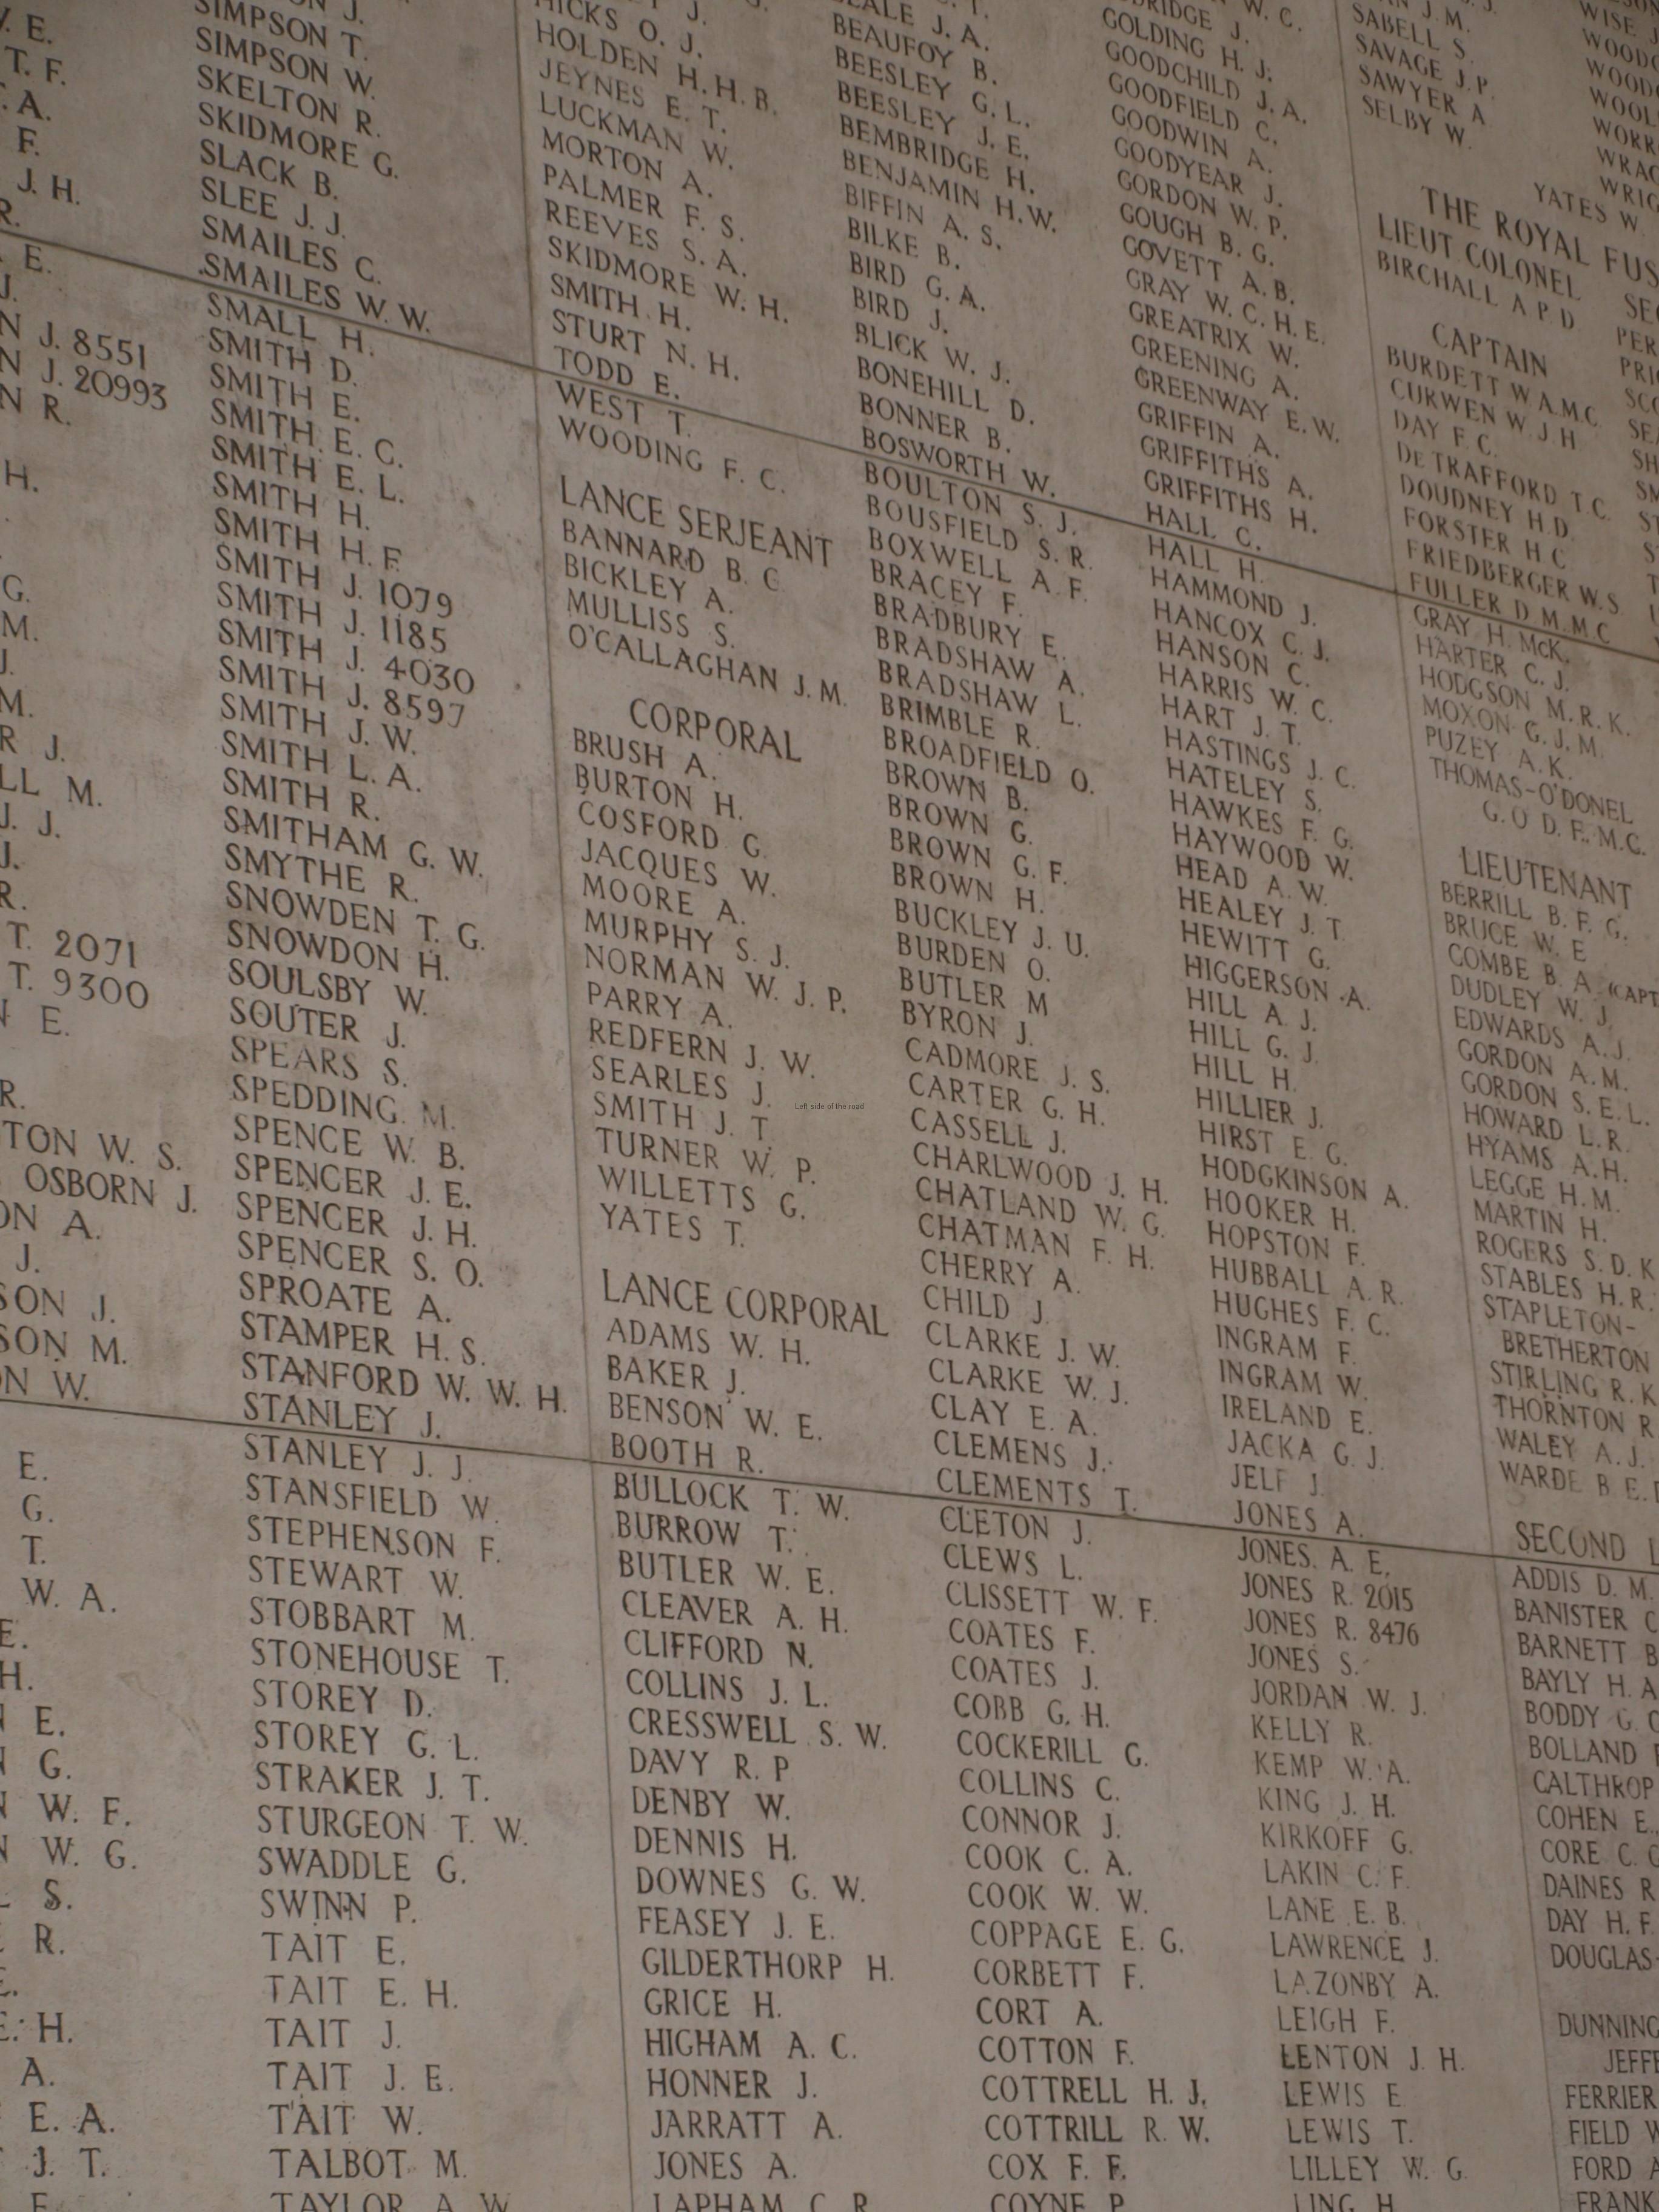 Class follows you to the grave, Menin Gate, Ypres, Belgium